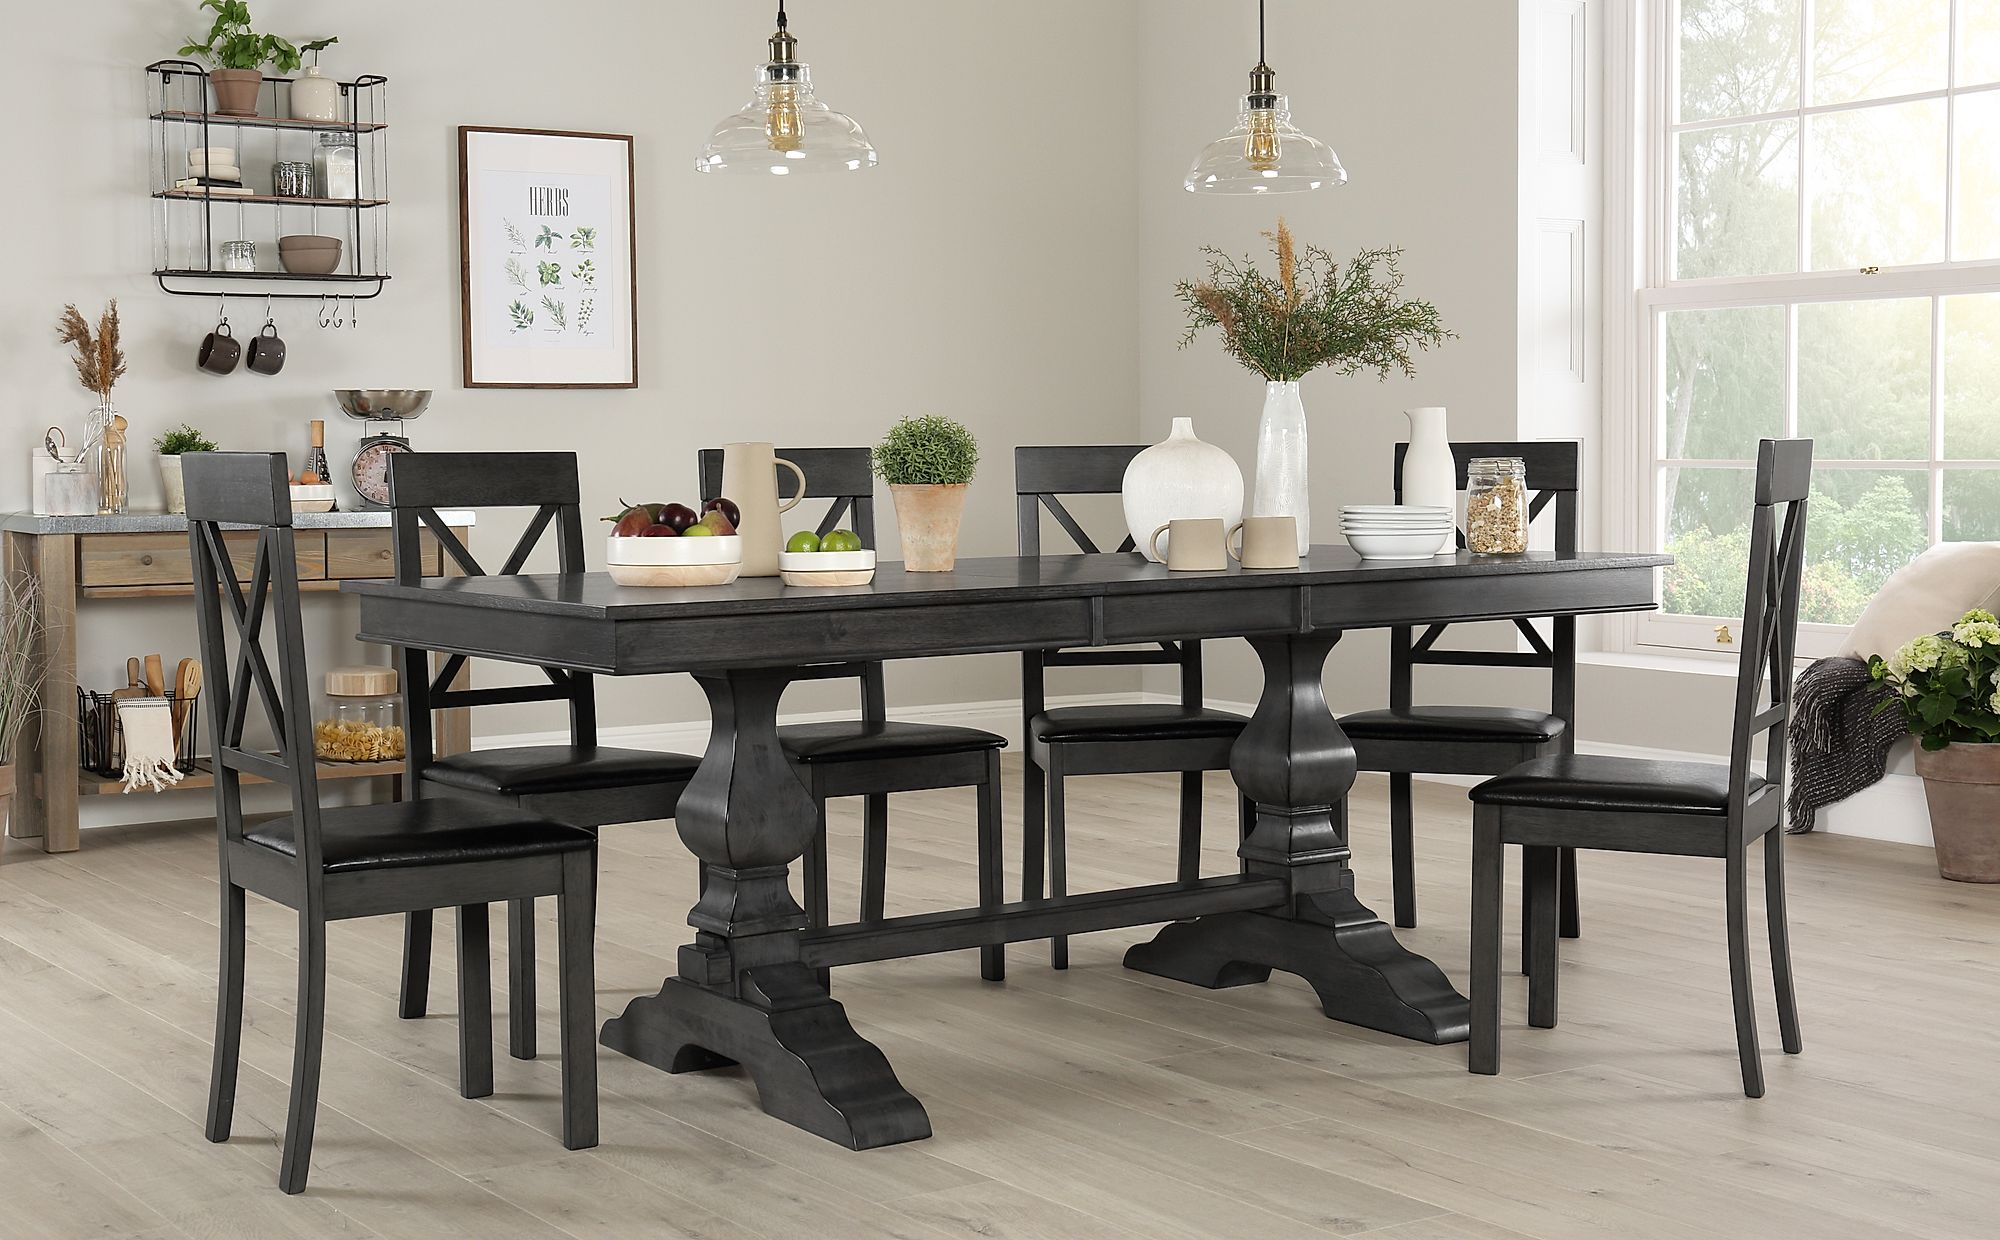 Grey Wood Dining Room Table: Cavendish Grey Wood Extending Dining Table With 6 Kendal